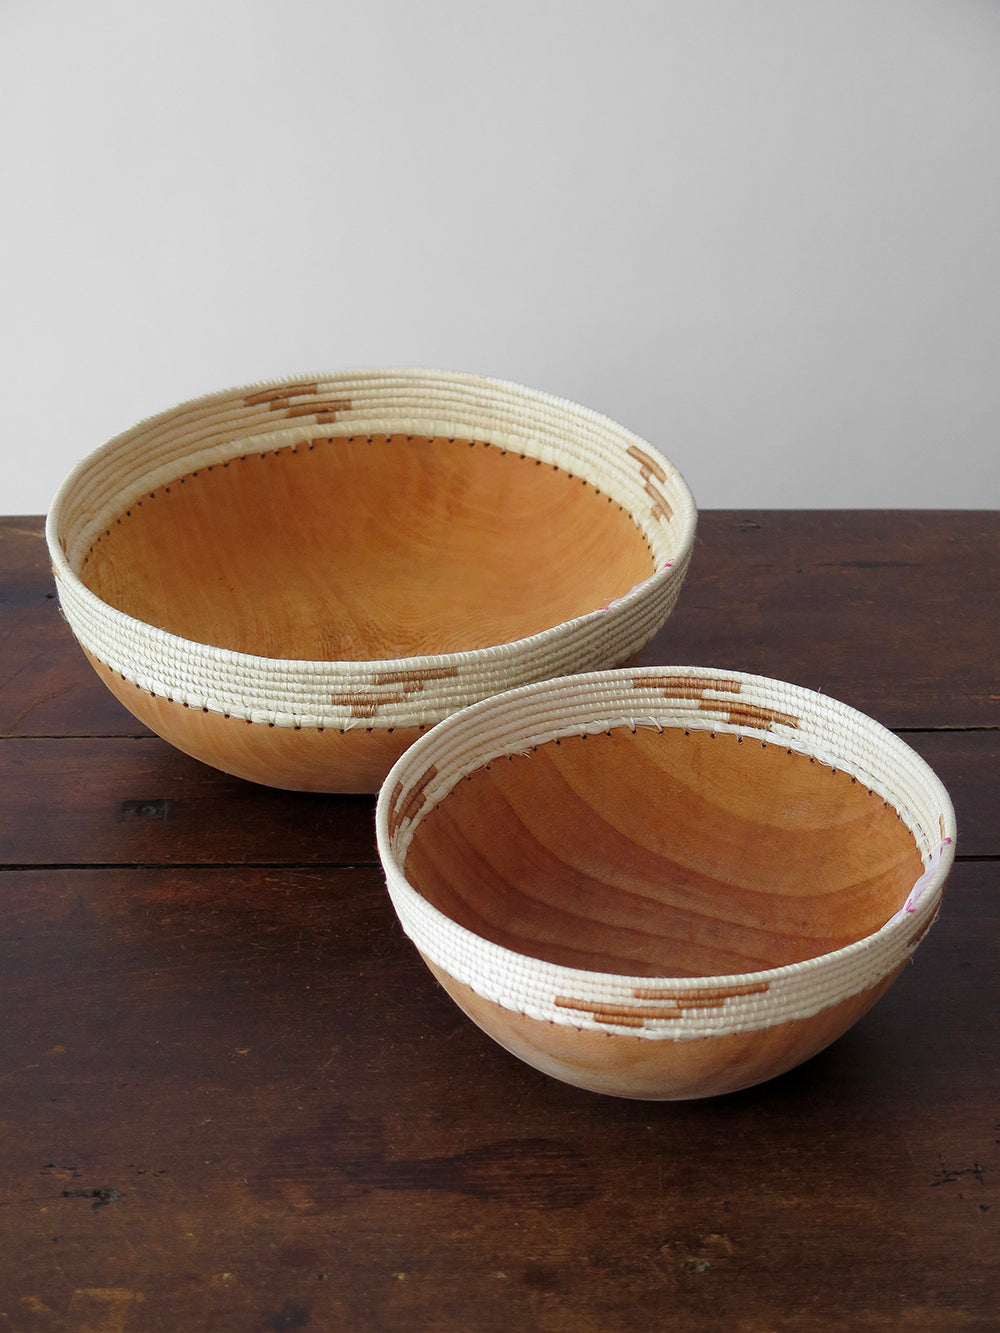 indego africa small copabu bowl